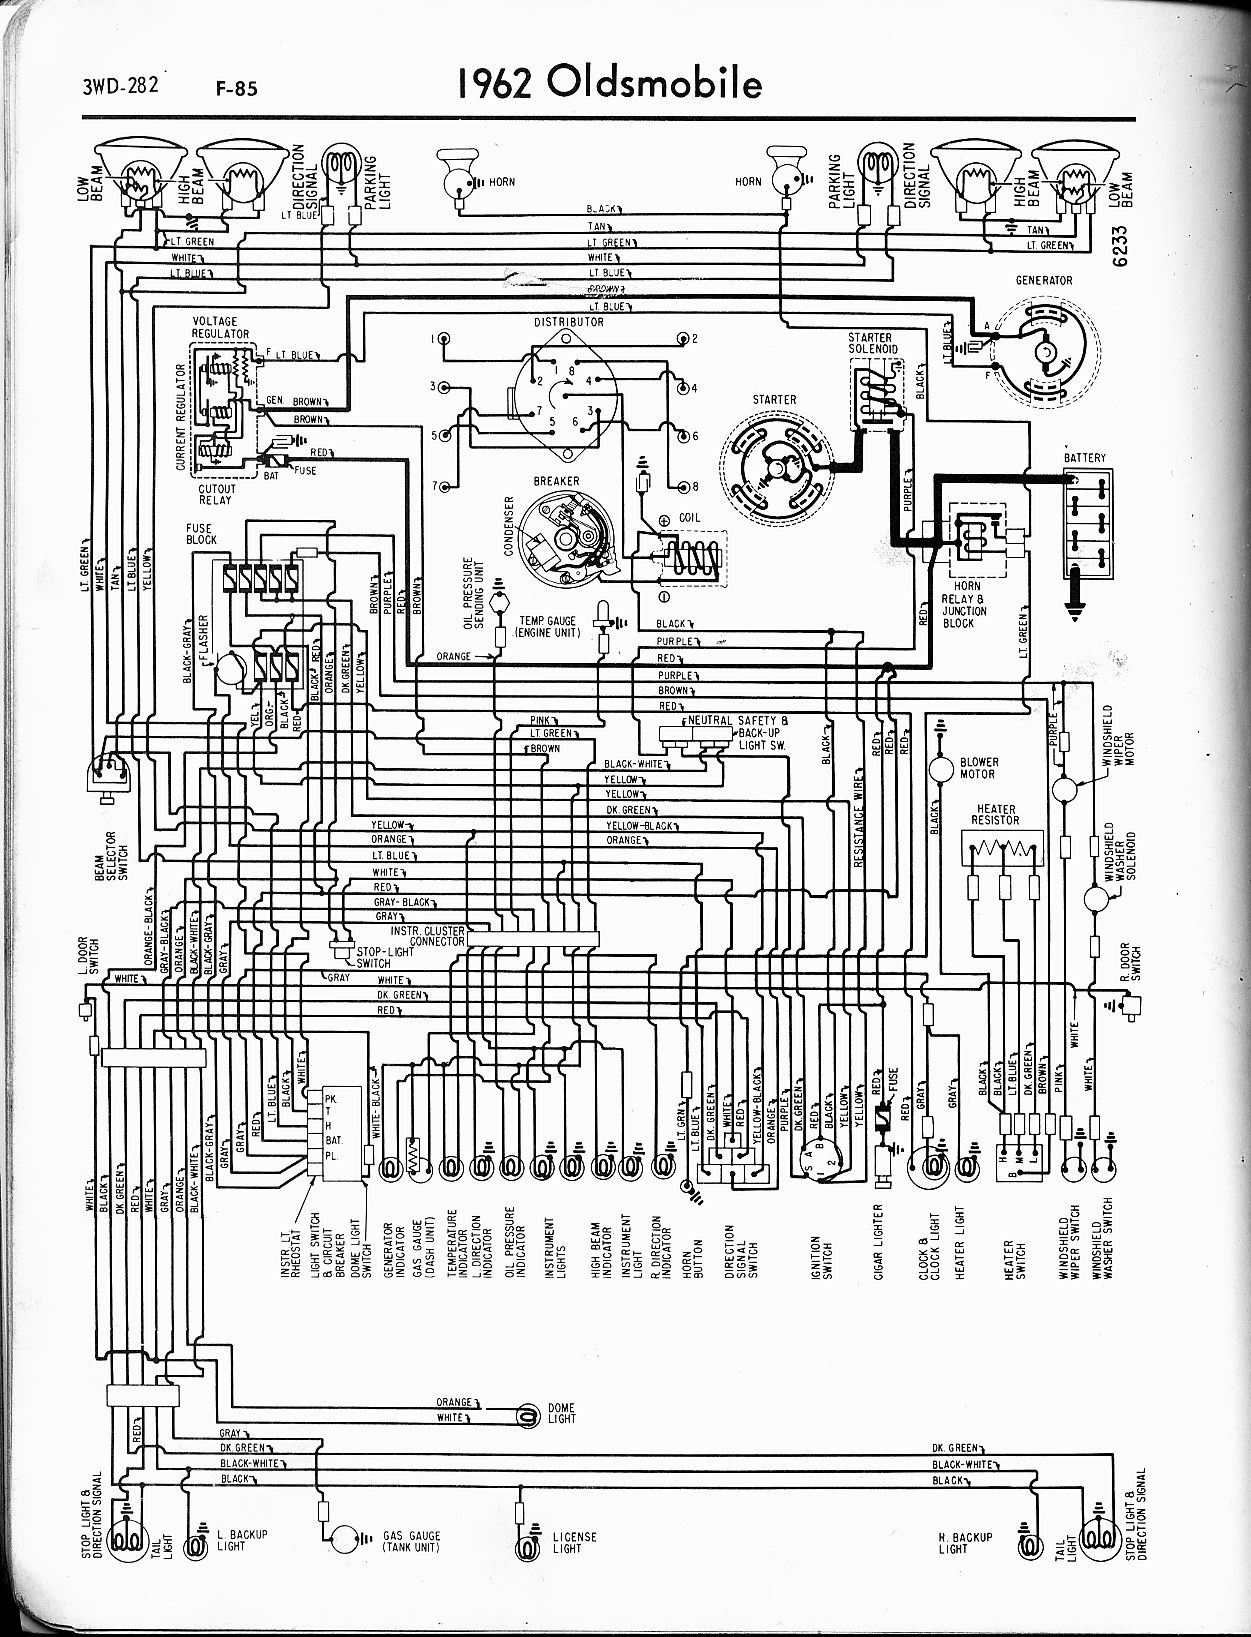 oldsmobile wiring diagrams the old car manual project Honda Wiring Diagrams MWire5765 282